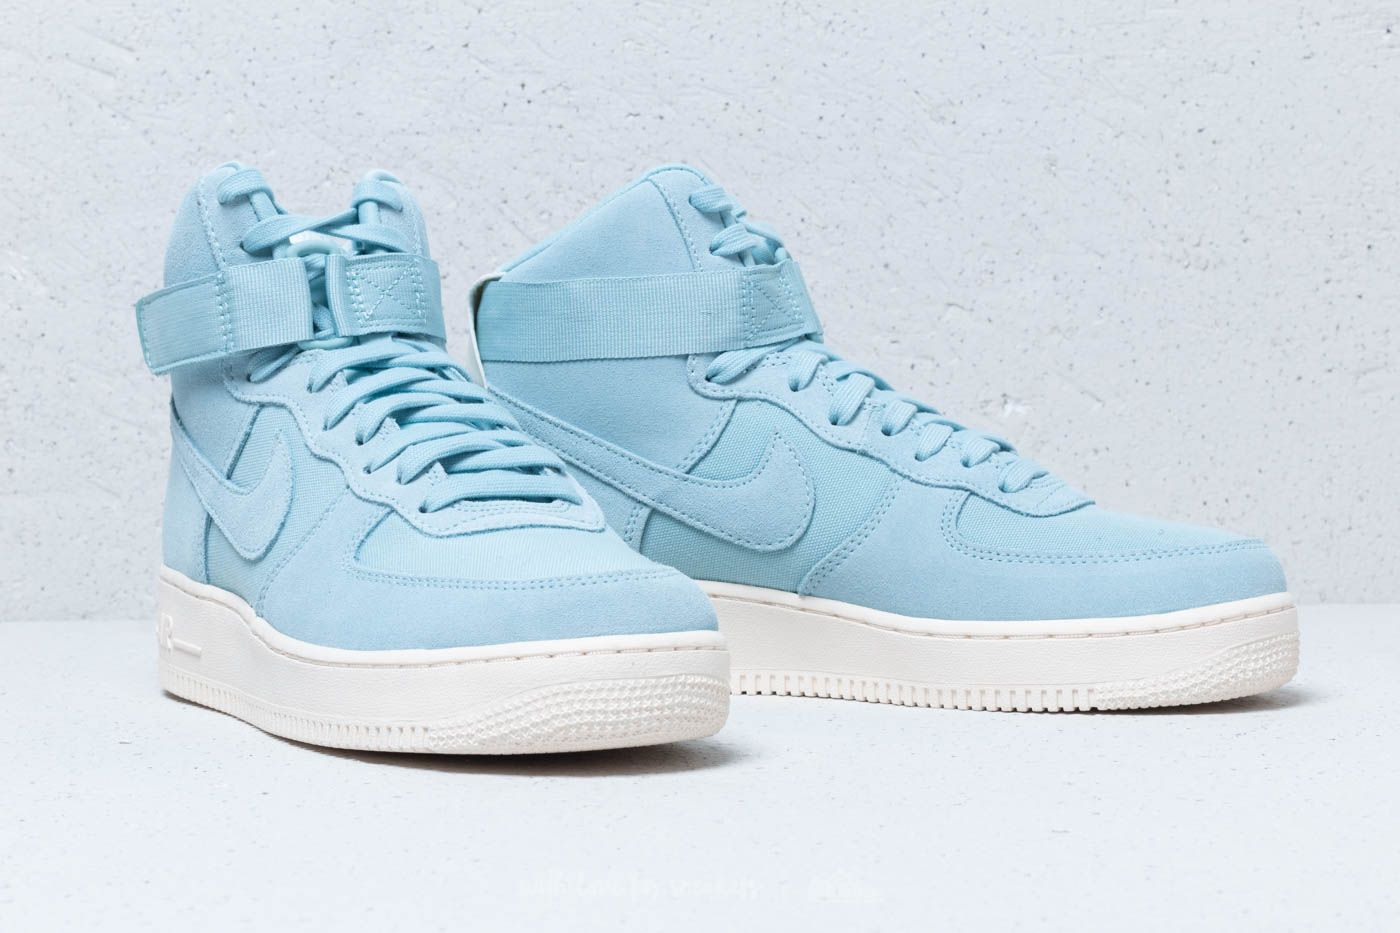 competitive price 1b275 90a95 Nike Air Force 1 High ´07 Suede Ocean Bliss/ Ocean Bliss ...